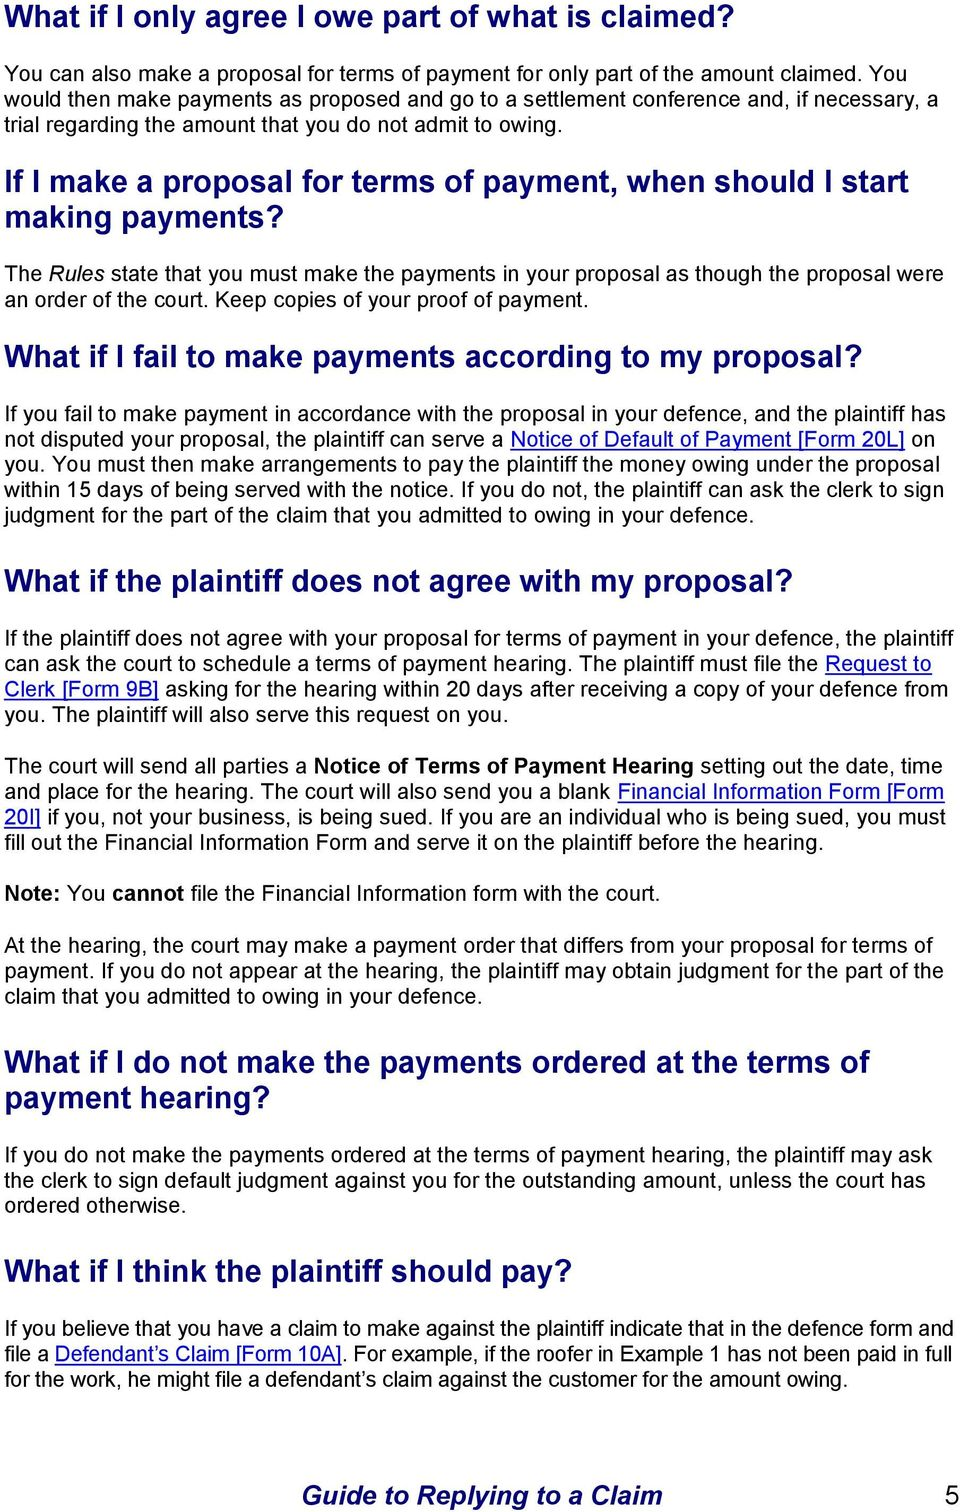 If I make a proposal for terms of payment, when should I start making payments? The Rules state that you must make the payments in your proposal as though the proposal were an order of the court.